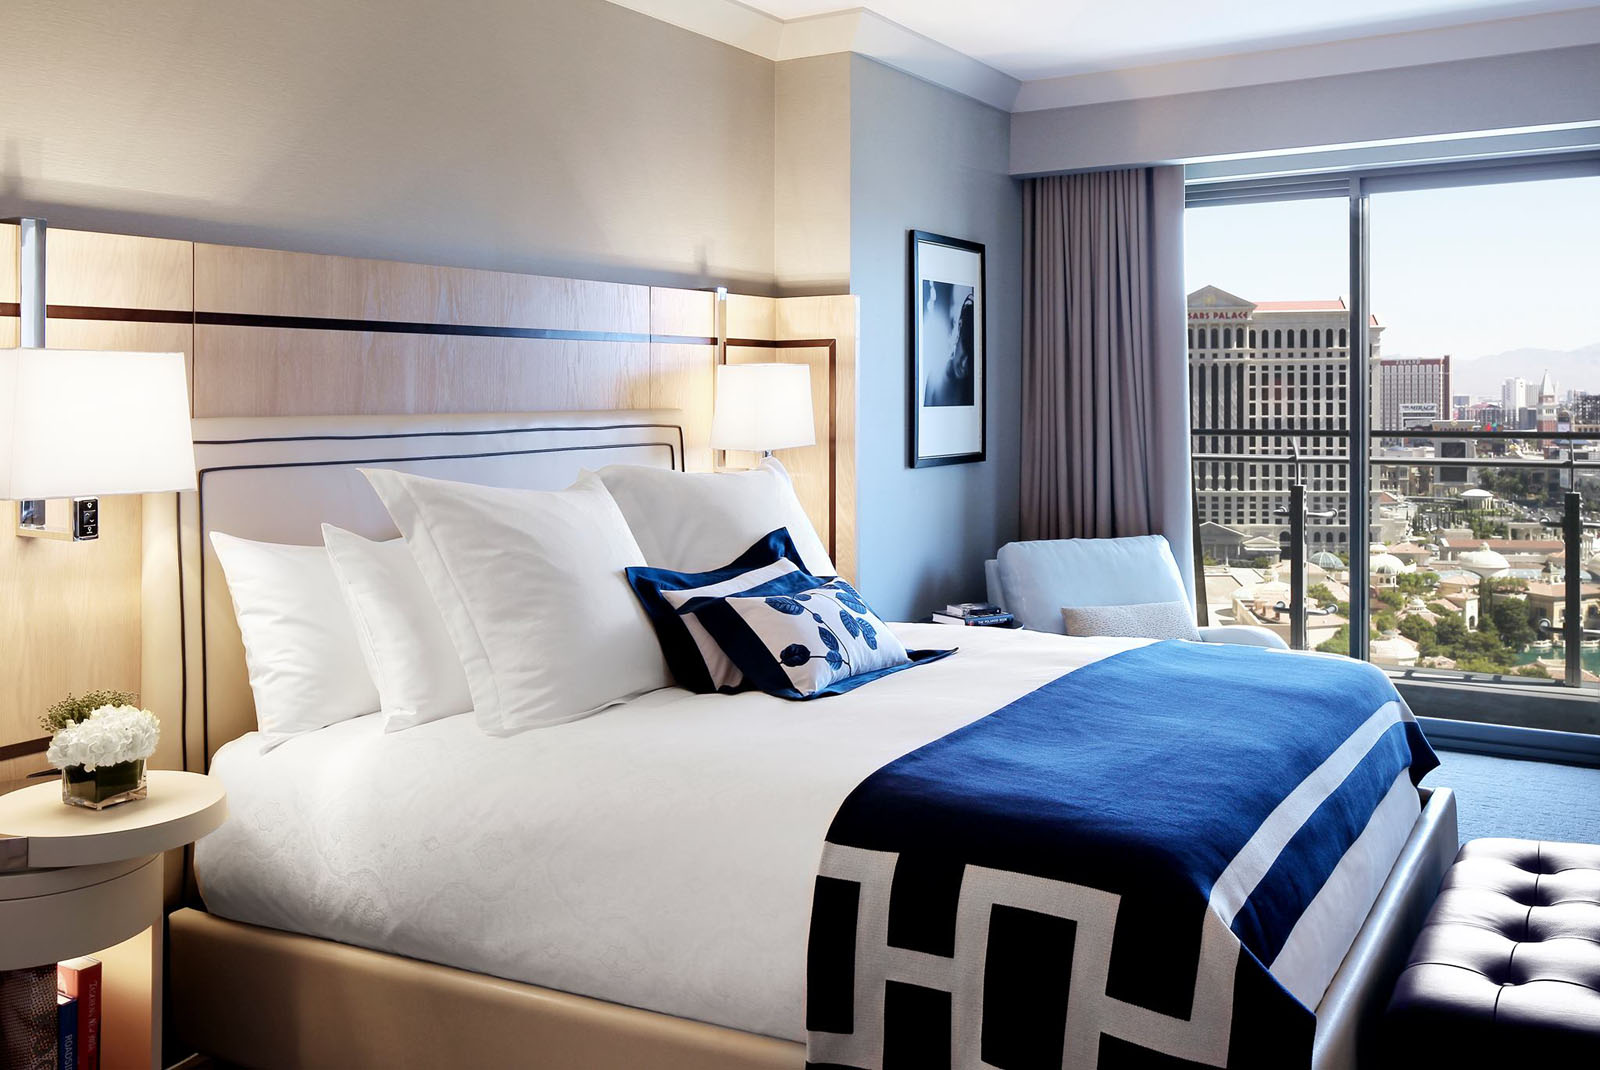 Swanky Hotel Interior Design: The Cosmopolitan of Las ...